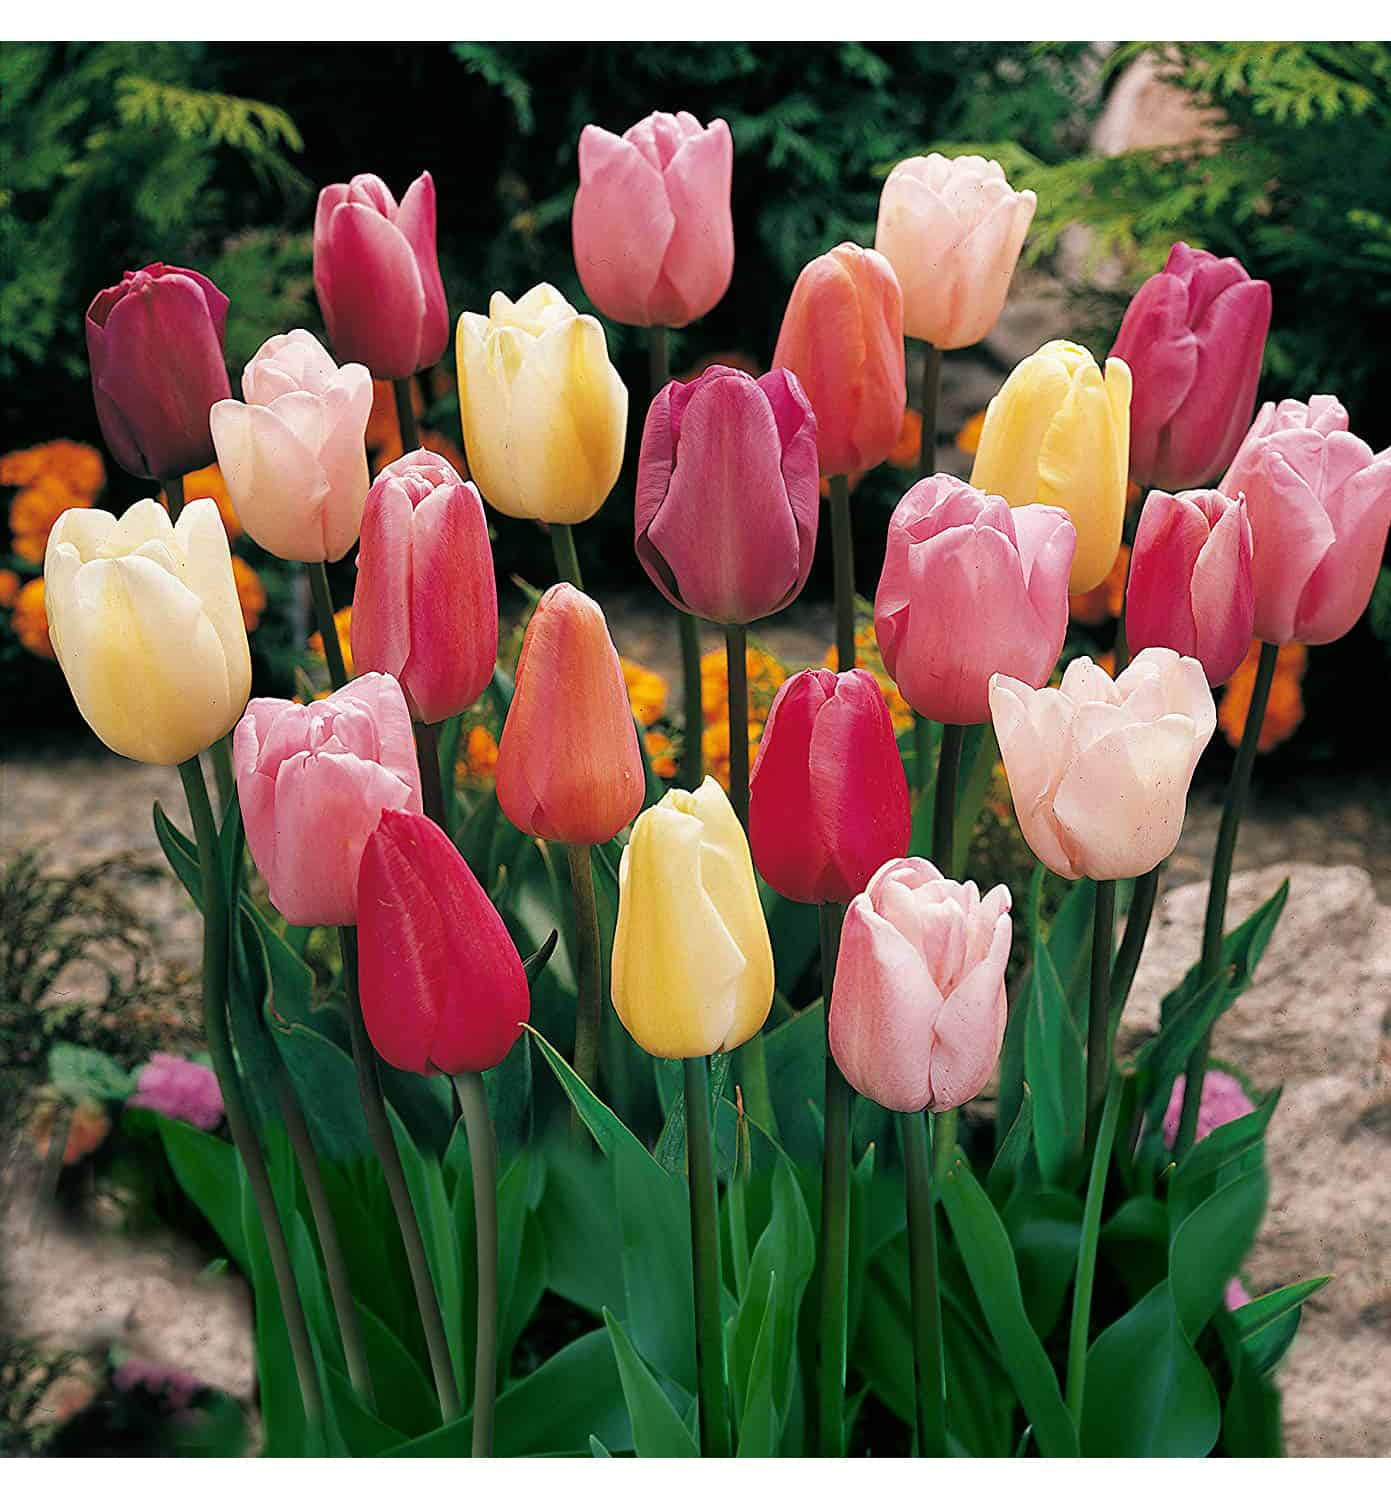 red, pink, and yellow tulips